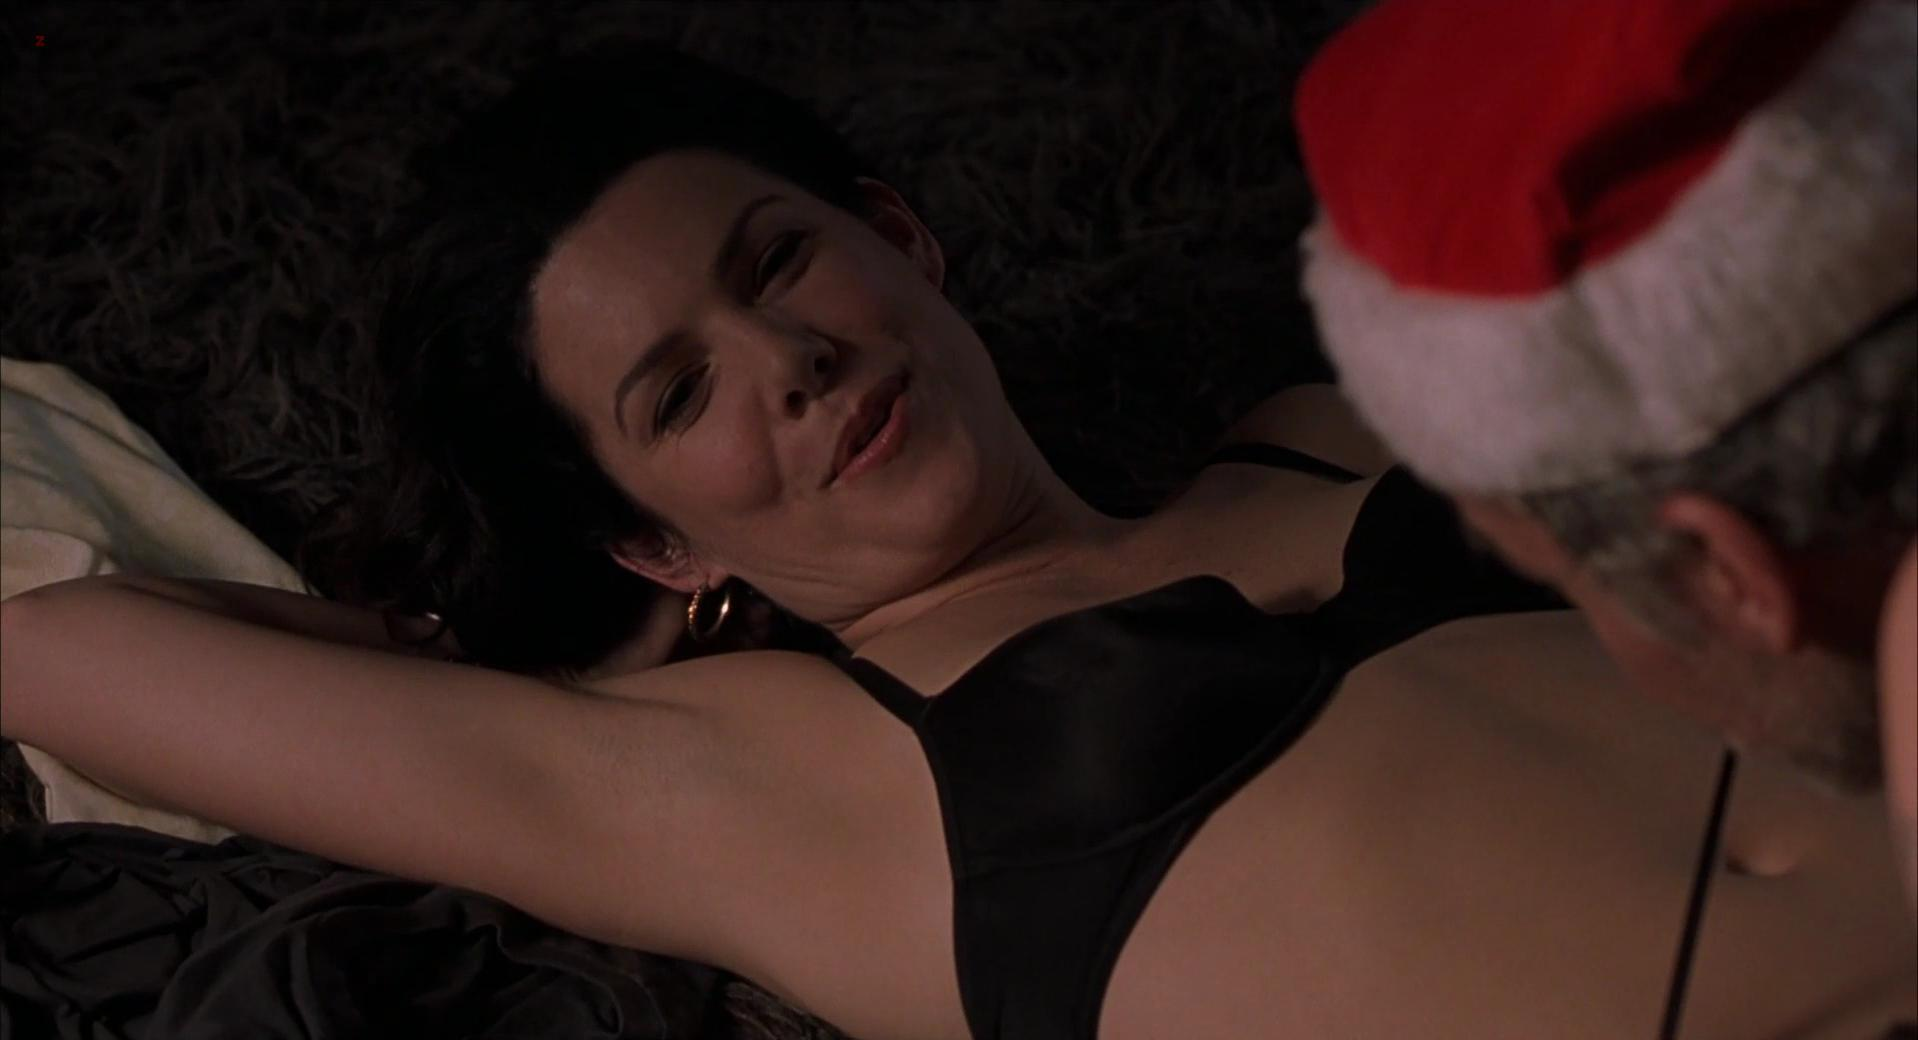 lauren graham nude photos